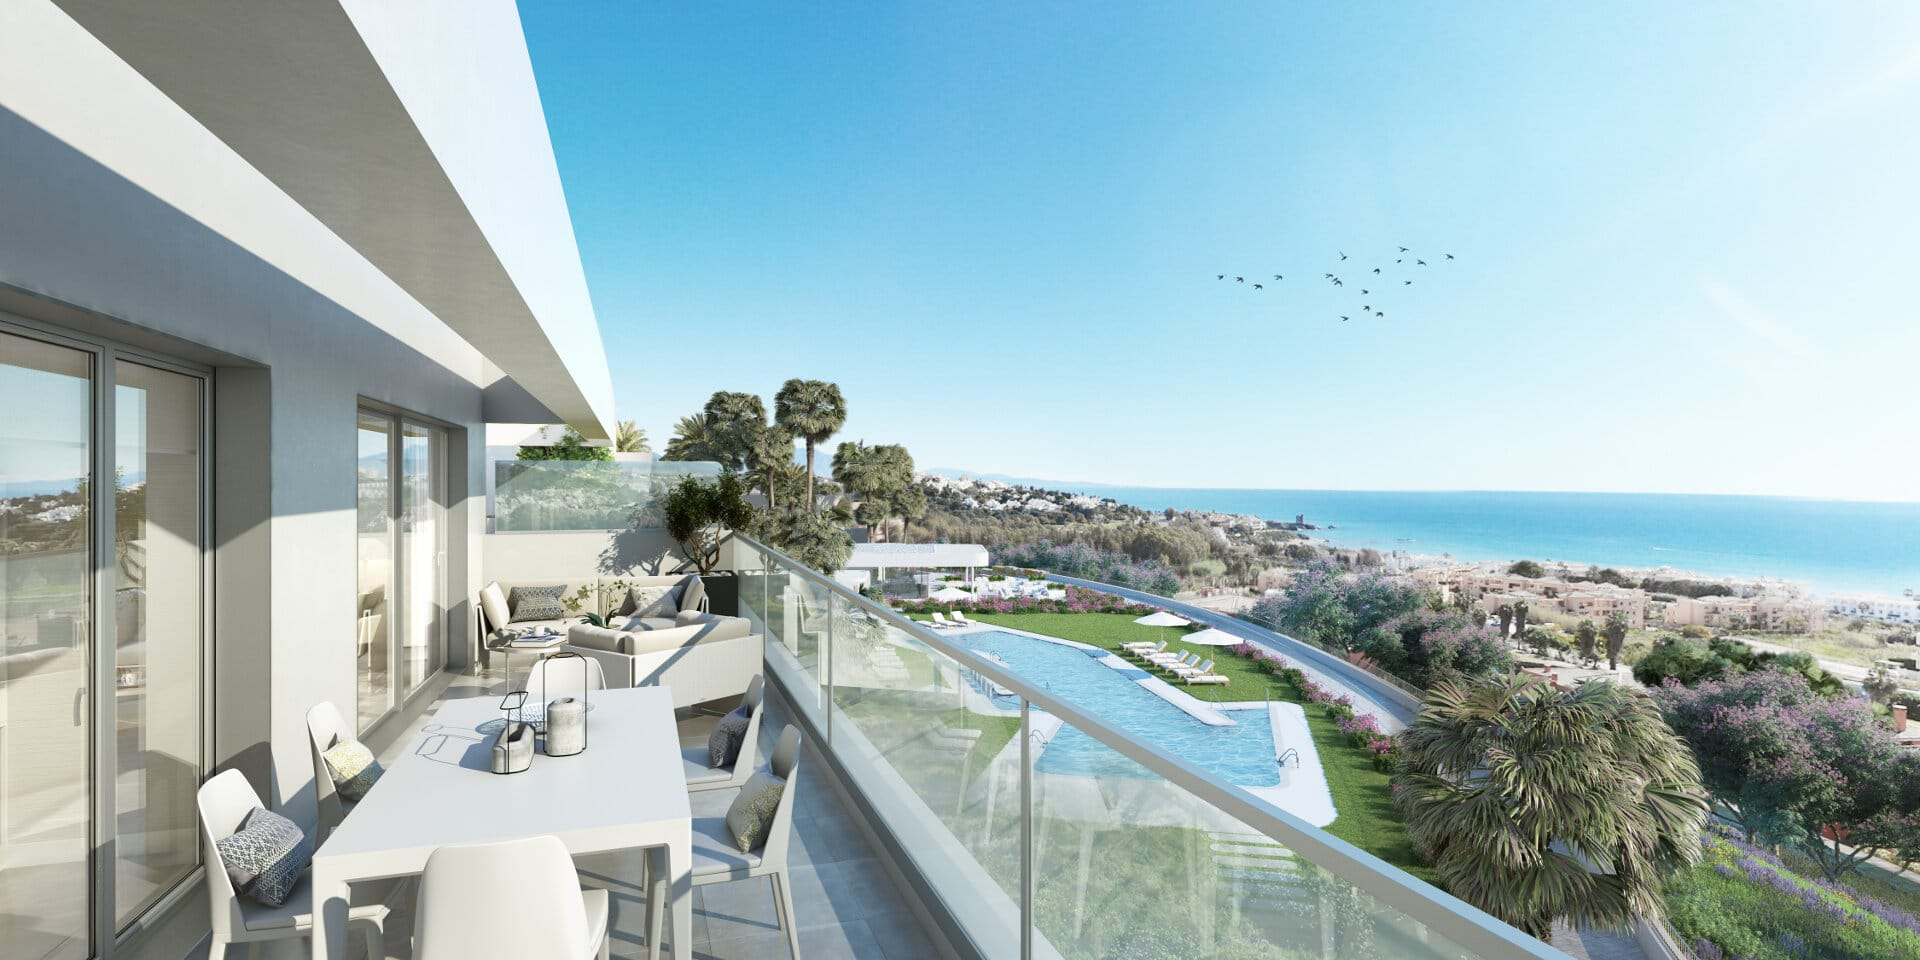 New 3 bedroom apartment with beautiful views over the sea and the Doña Julia golf course